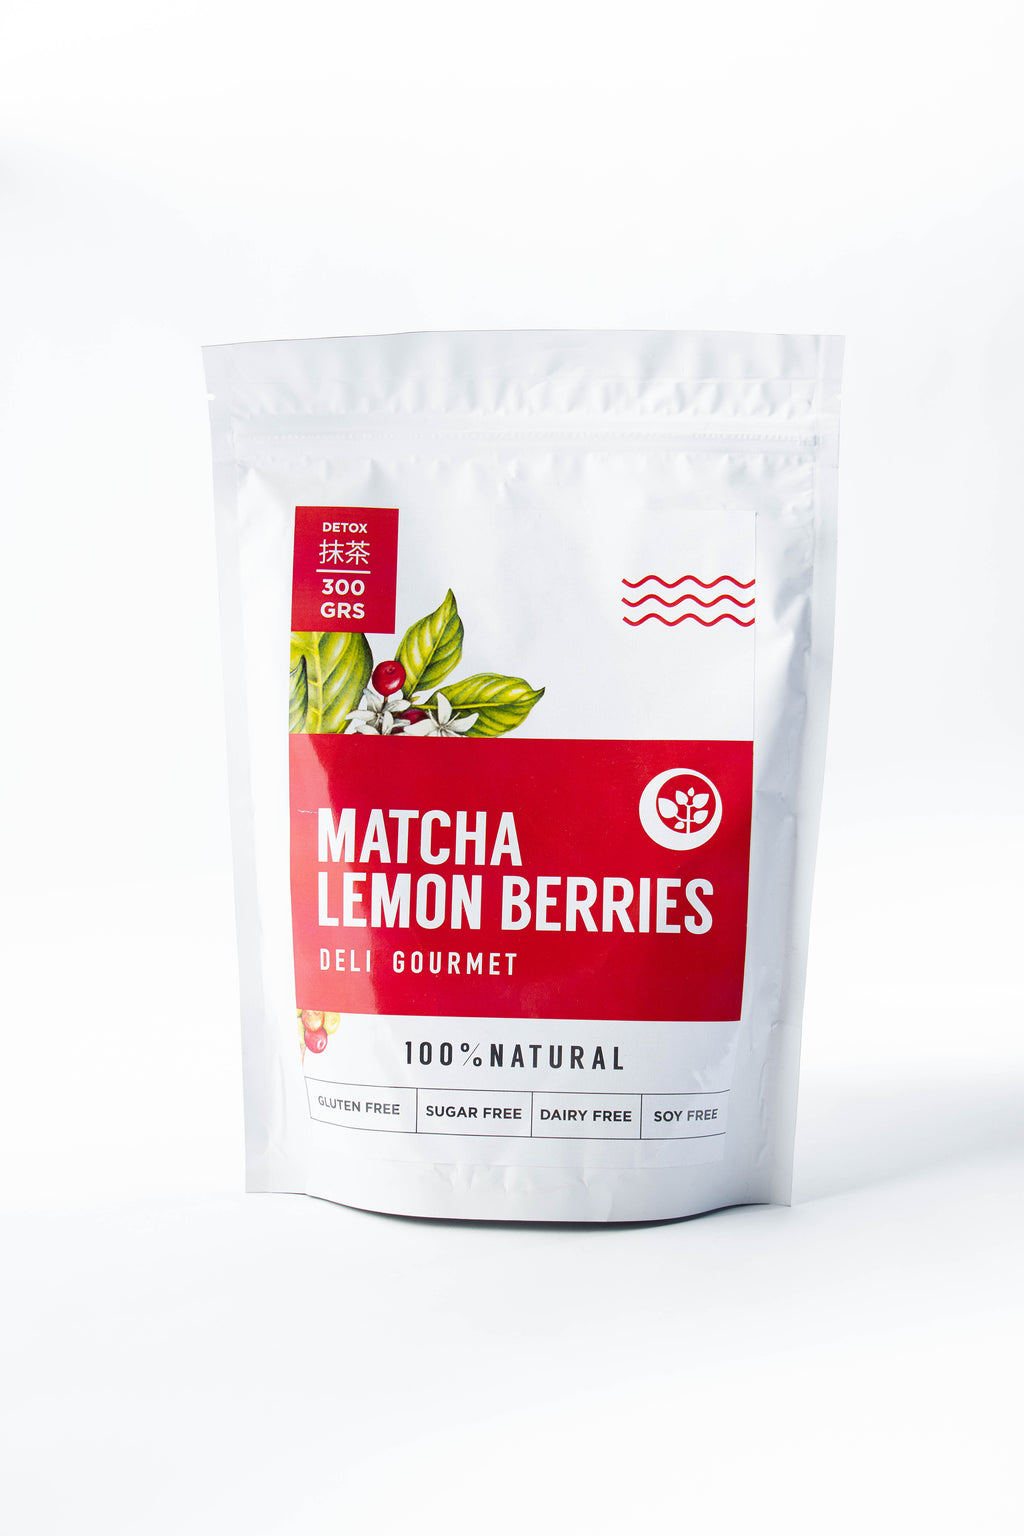 Matcha Lemon Berries